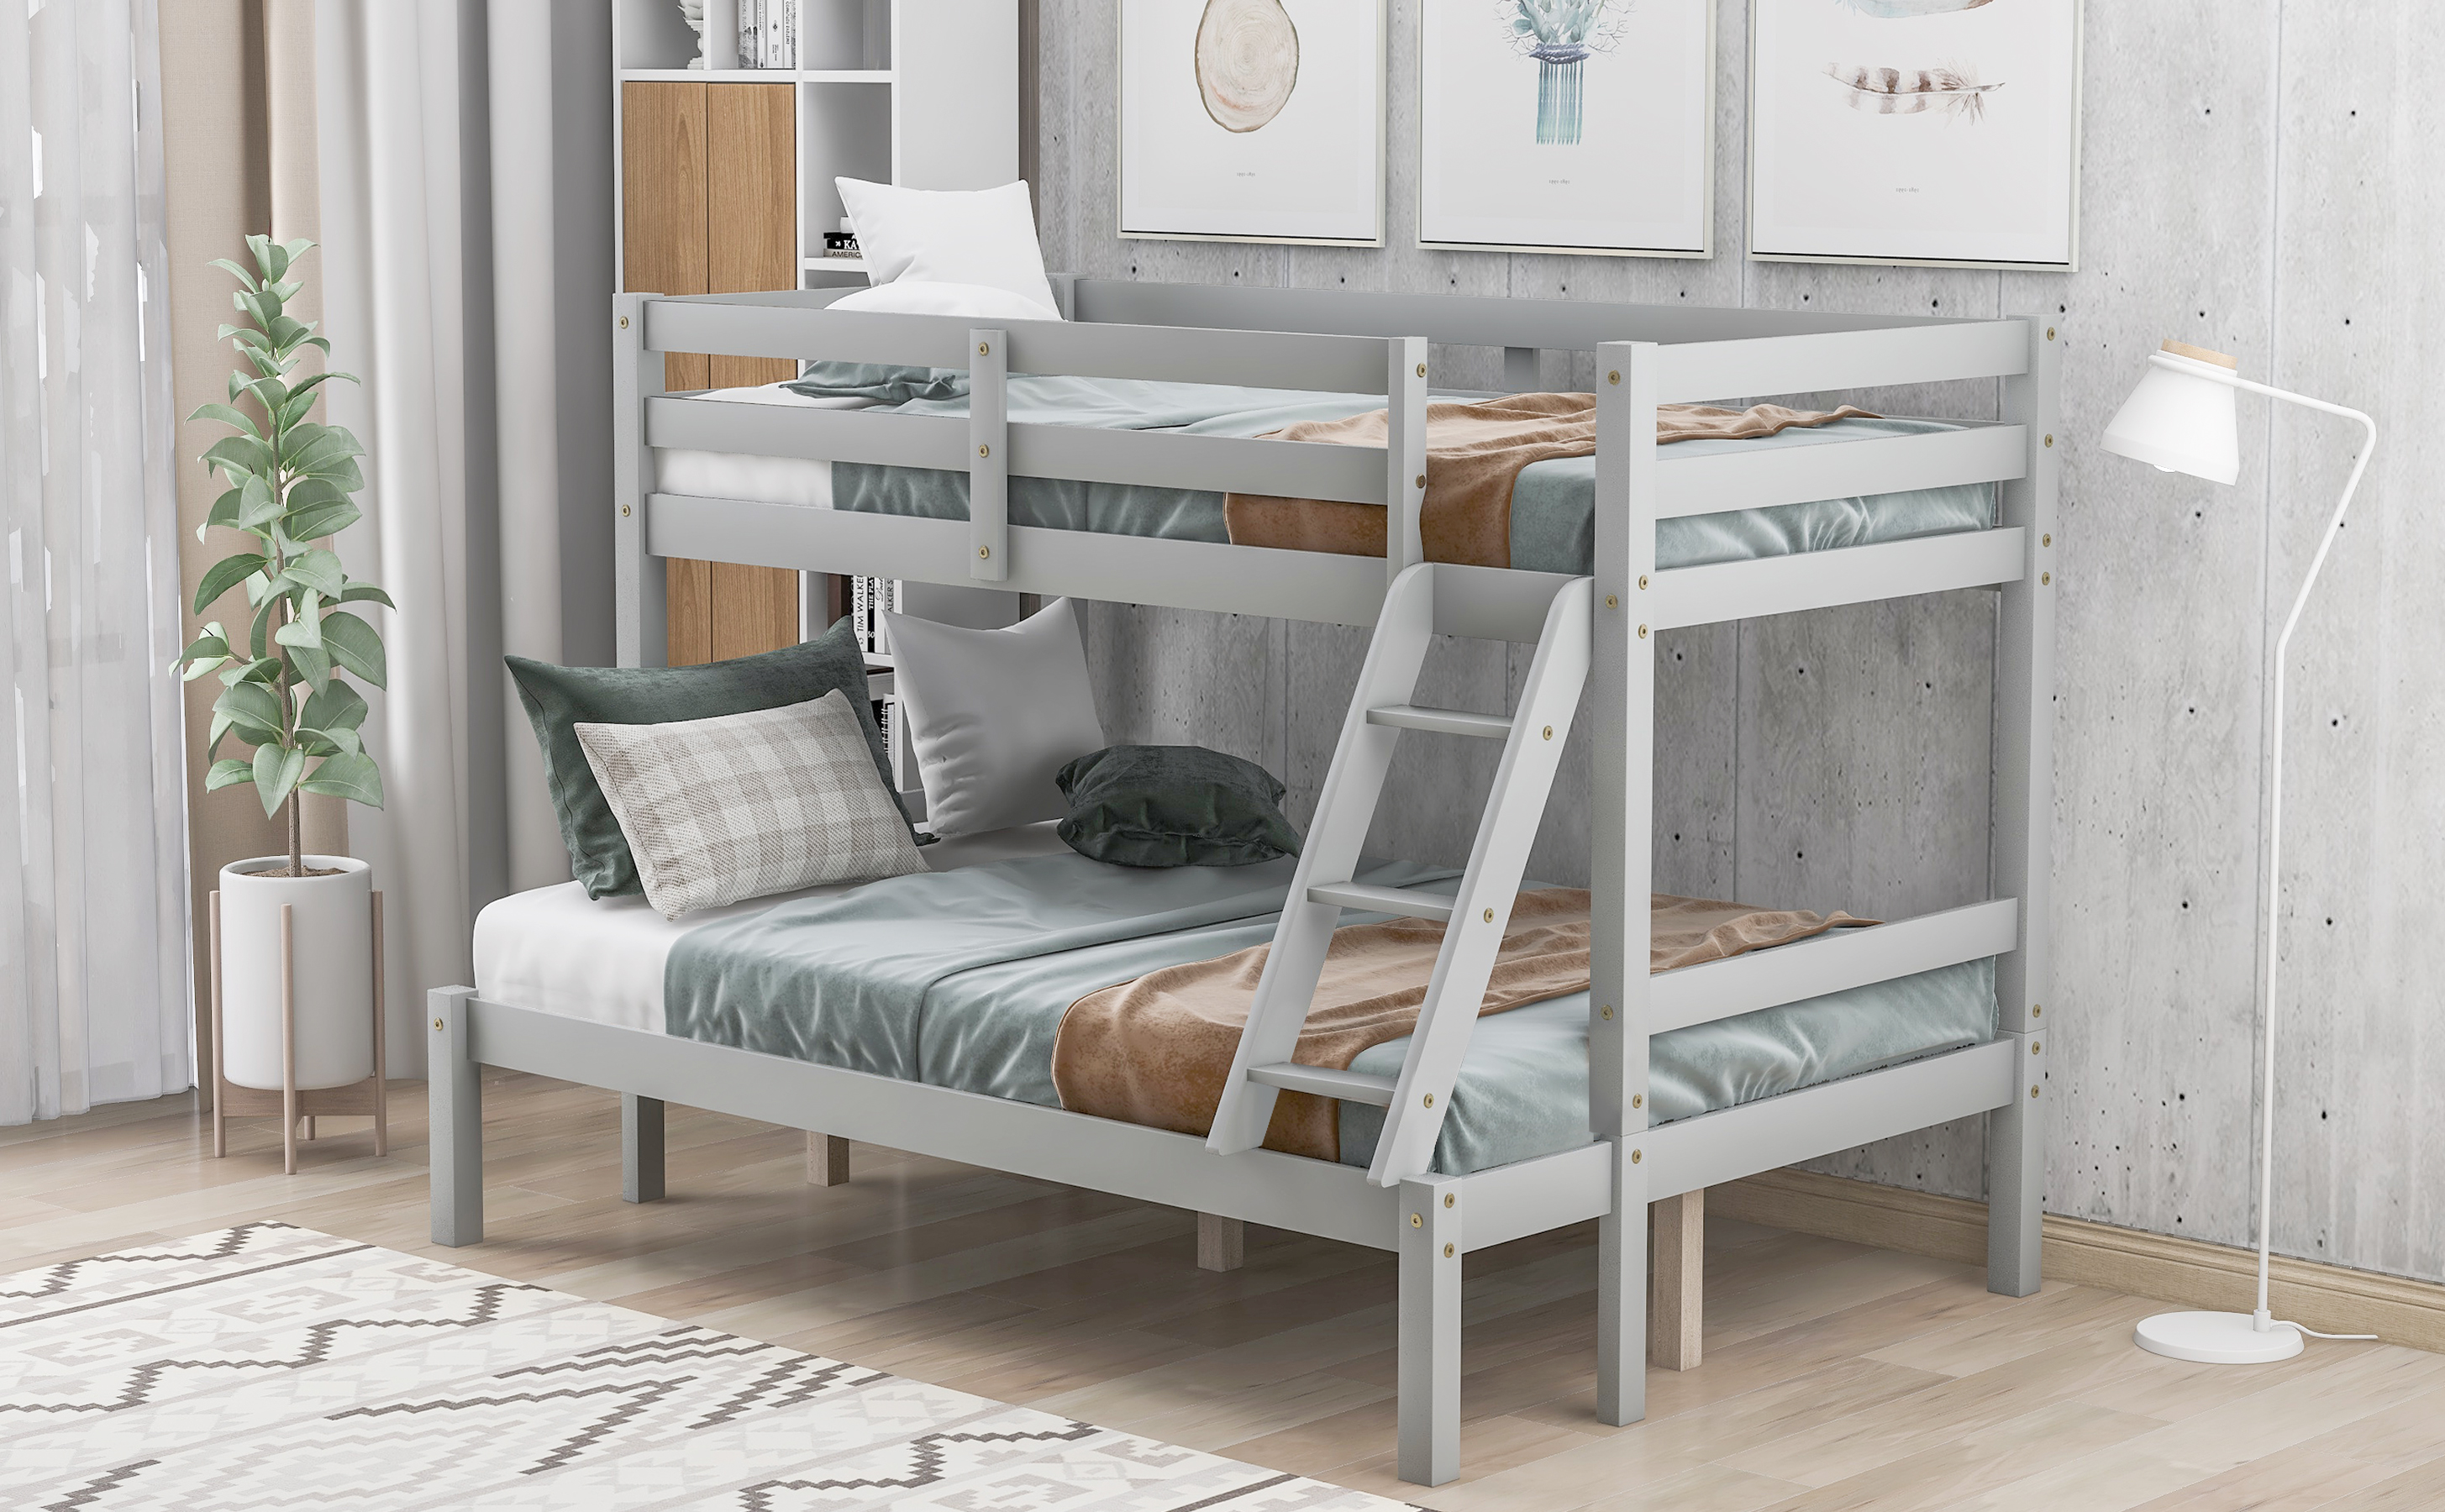 Twin Over Full Bunk Bed Wooden Bunk Bed With Ladder And Safety Rail Twin Loft Bed With 8 Slats And Pine Legs Bunk Bed For Kids Teens Adults Bunk Bed For Bedroom